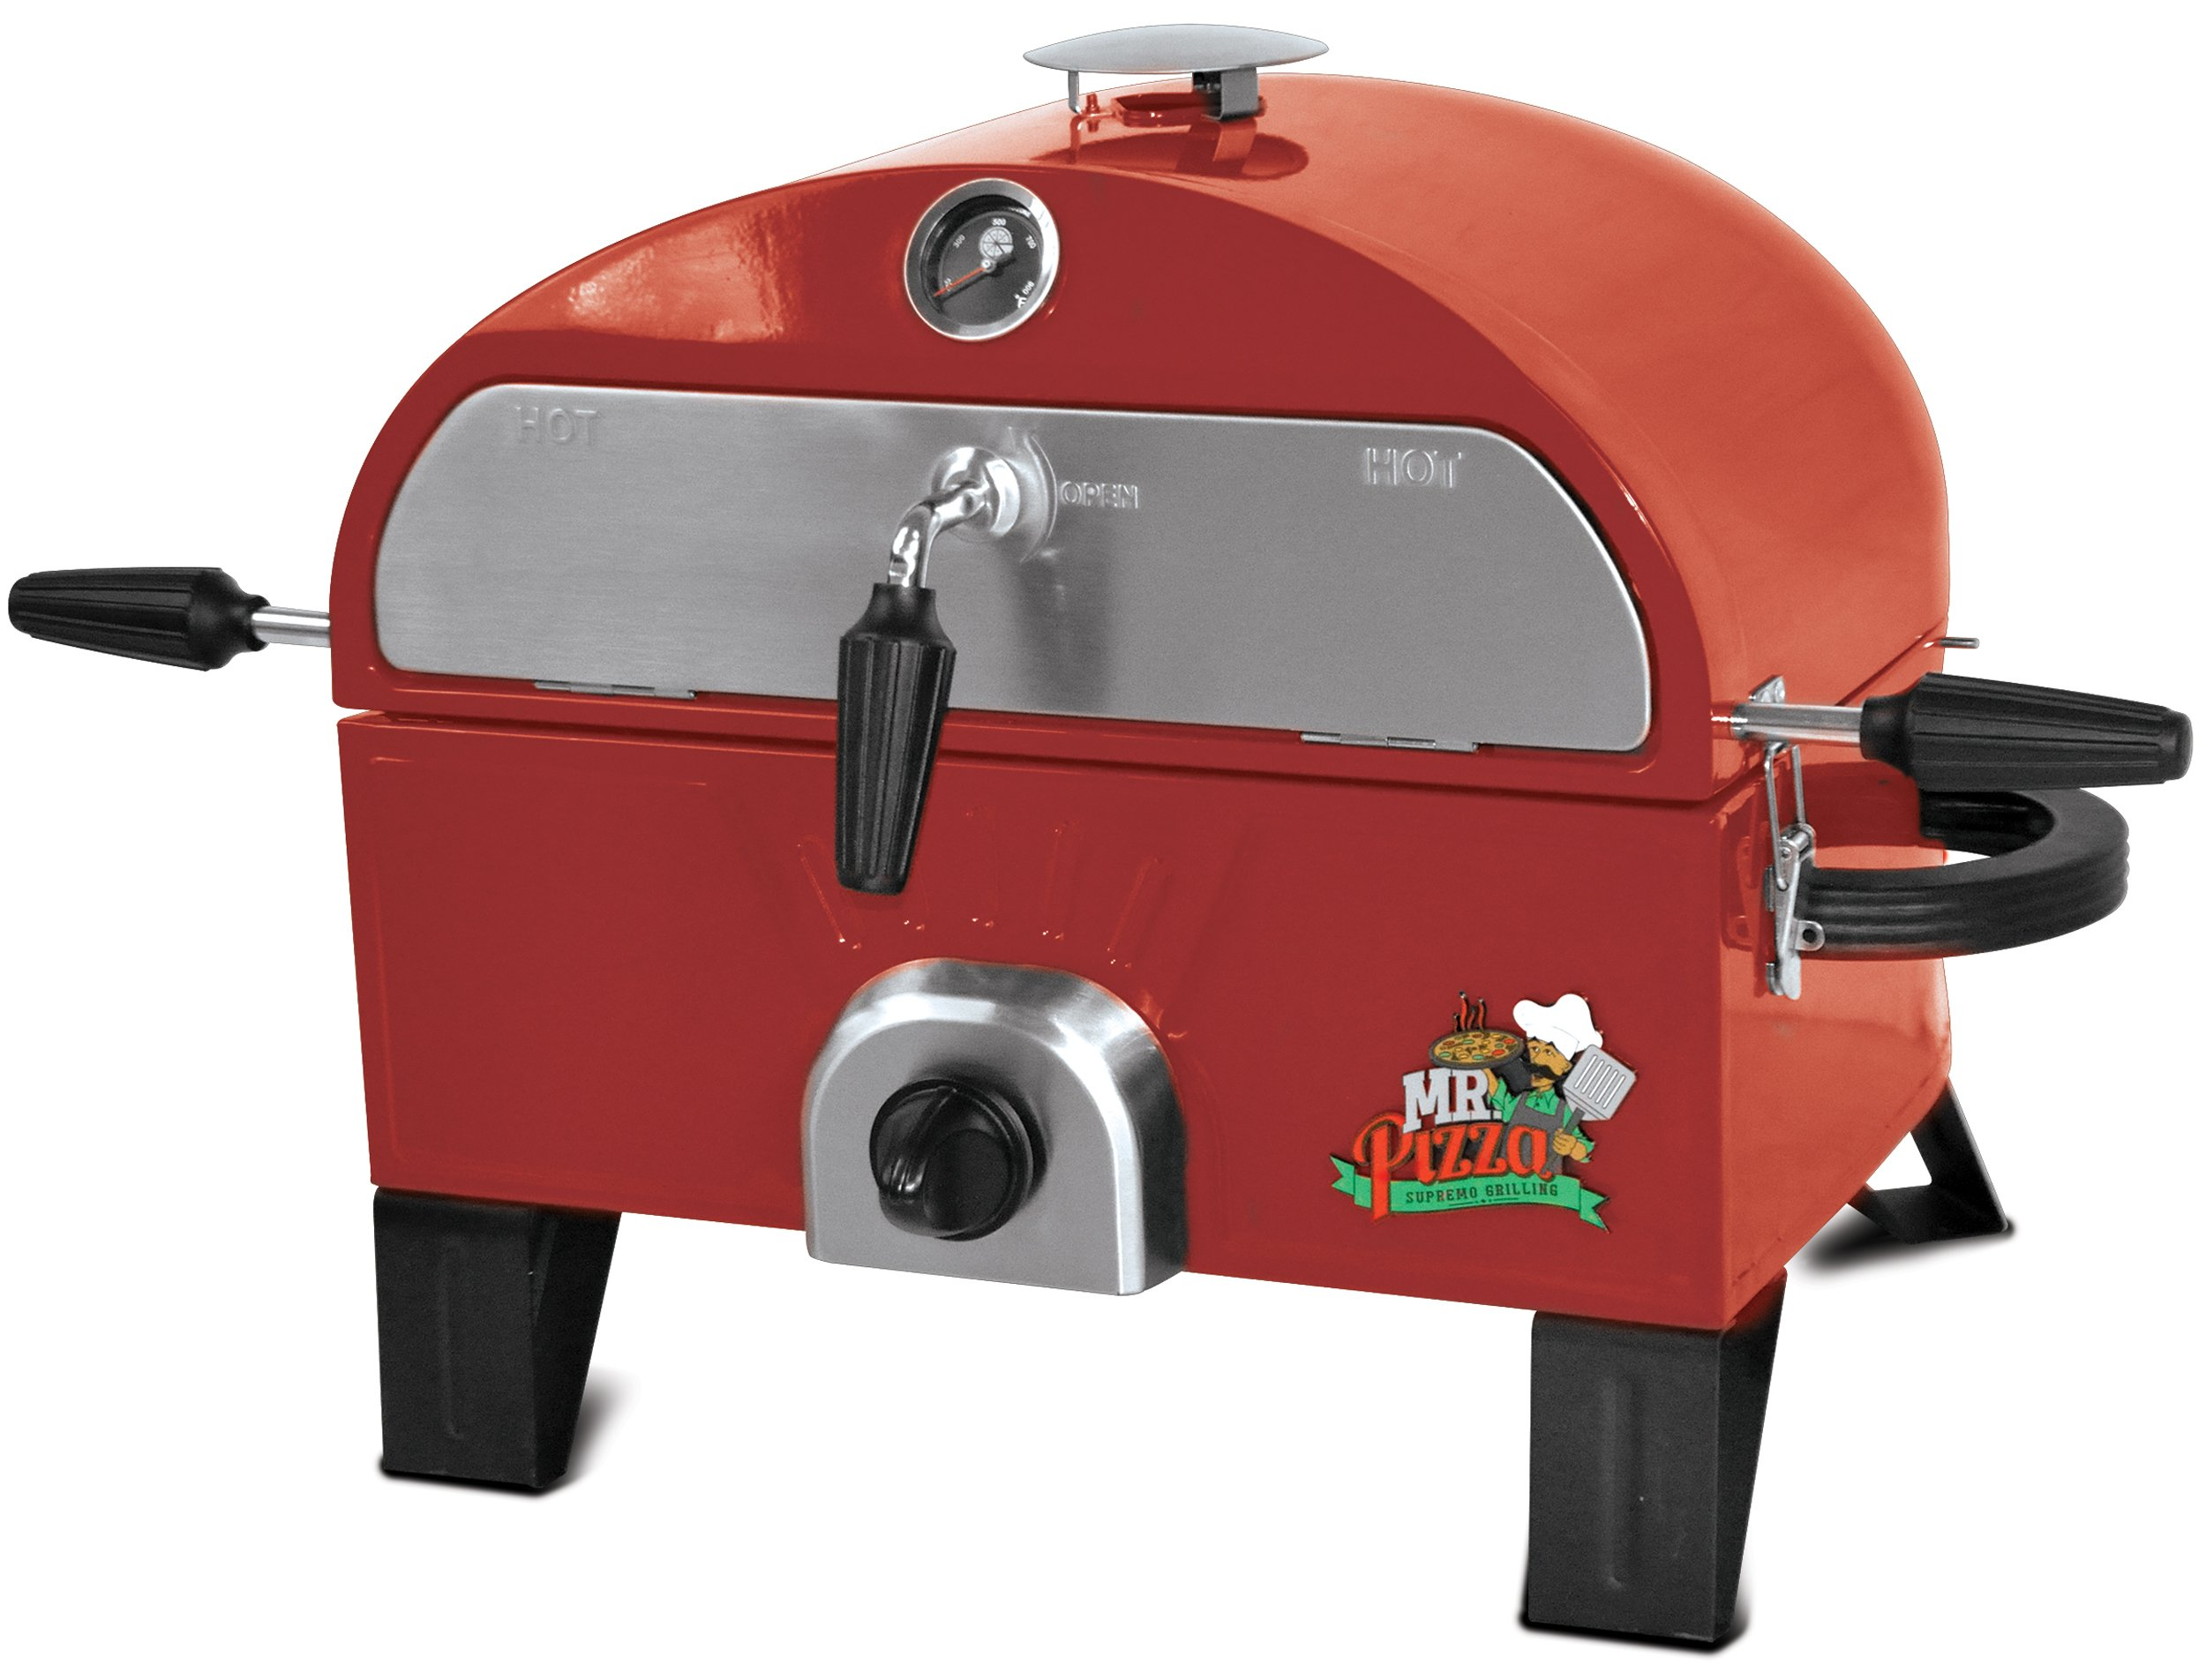 Mr. Pizza GOT1509M Pizza Oven, Red Gas Grill by Mr. Pizza